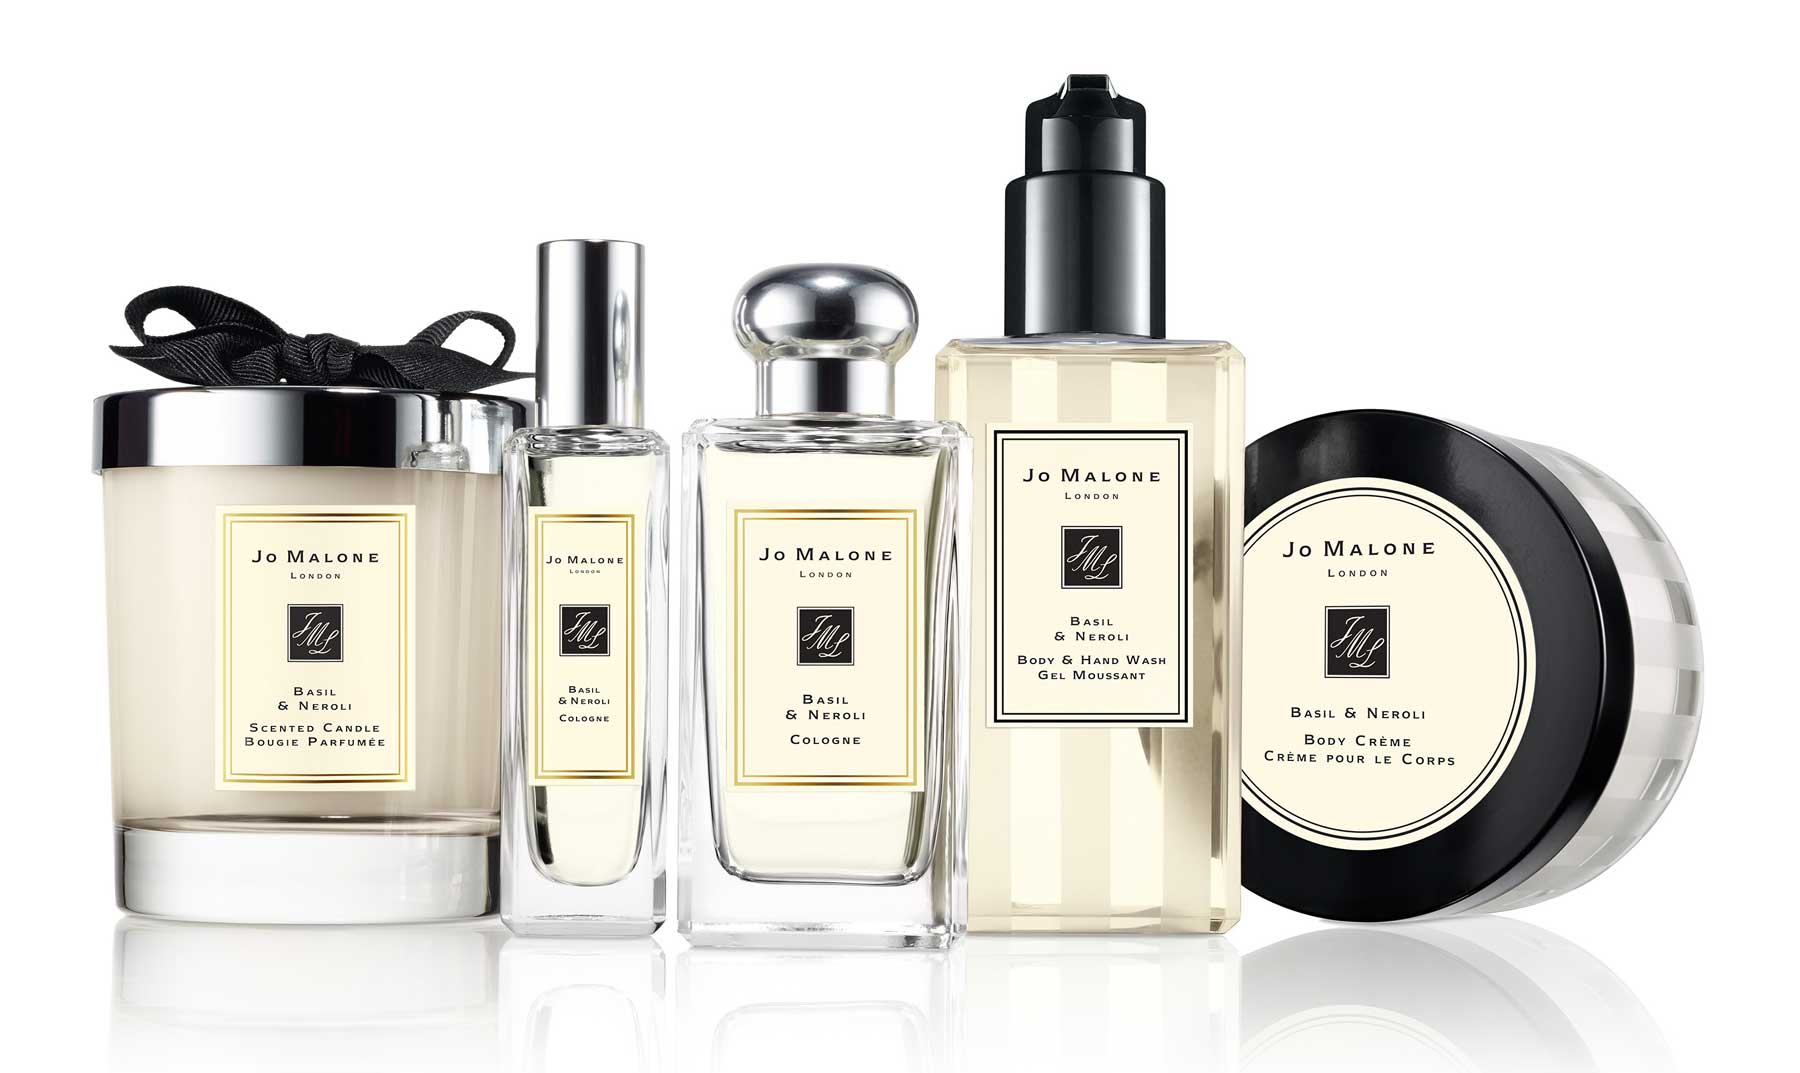 The spirit of England – Jo Malone!